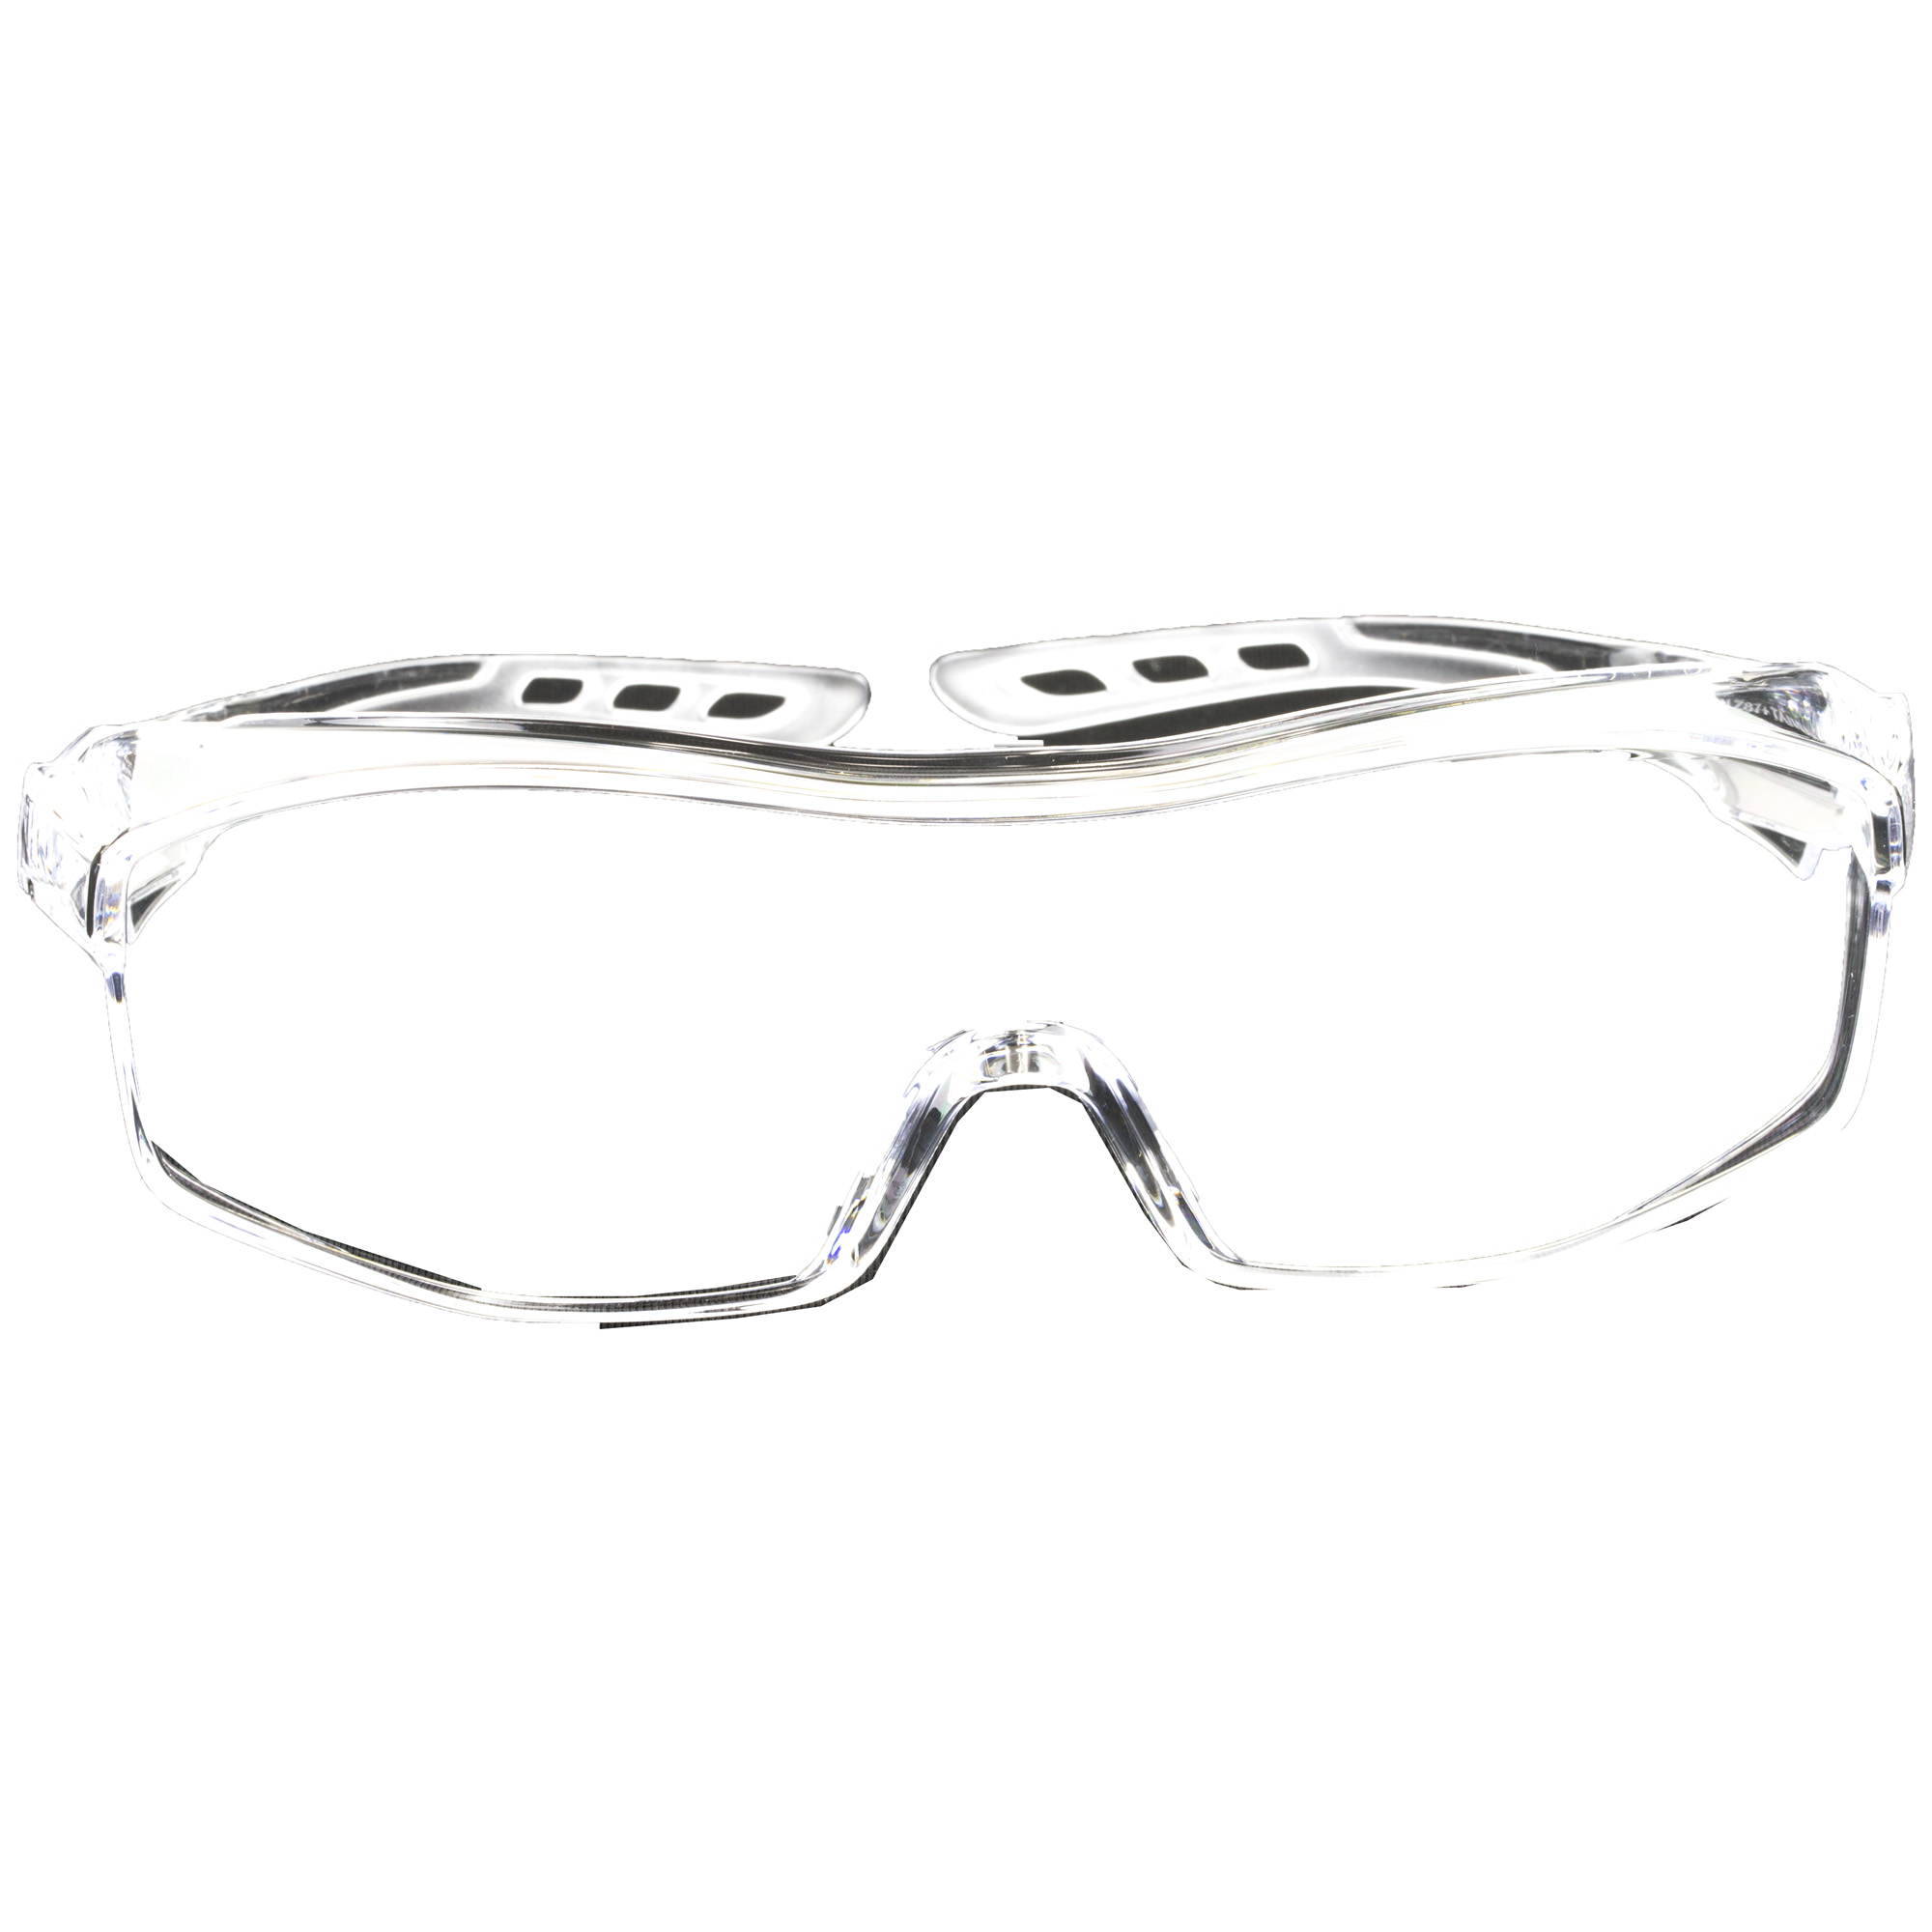 The Peltor Sport Shooting Eyeglass Protectors help protect your vision and prescription glasses while shooting. It is important to remember that most prescription eyeglasses do not contain safety lens and frame combinations. Peltor Sport Over-the-Glass Safety Eyewear offers excellent protection for those who wear prescription eyewear.